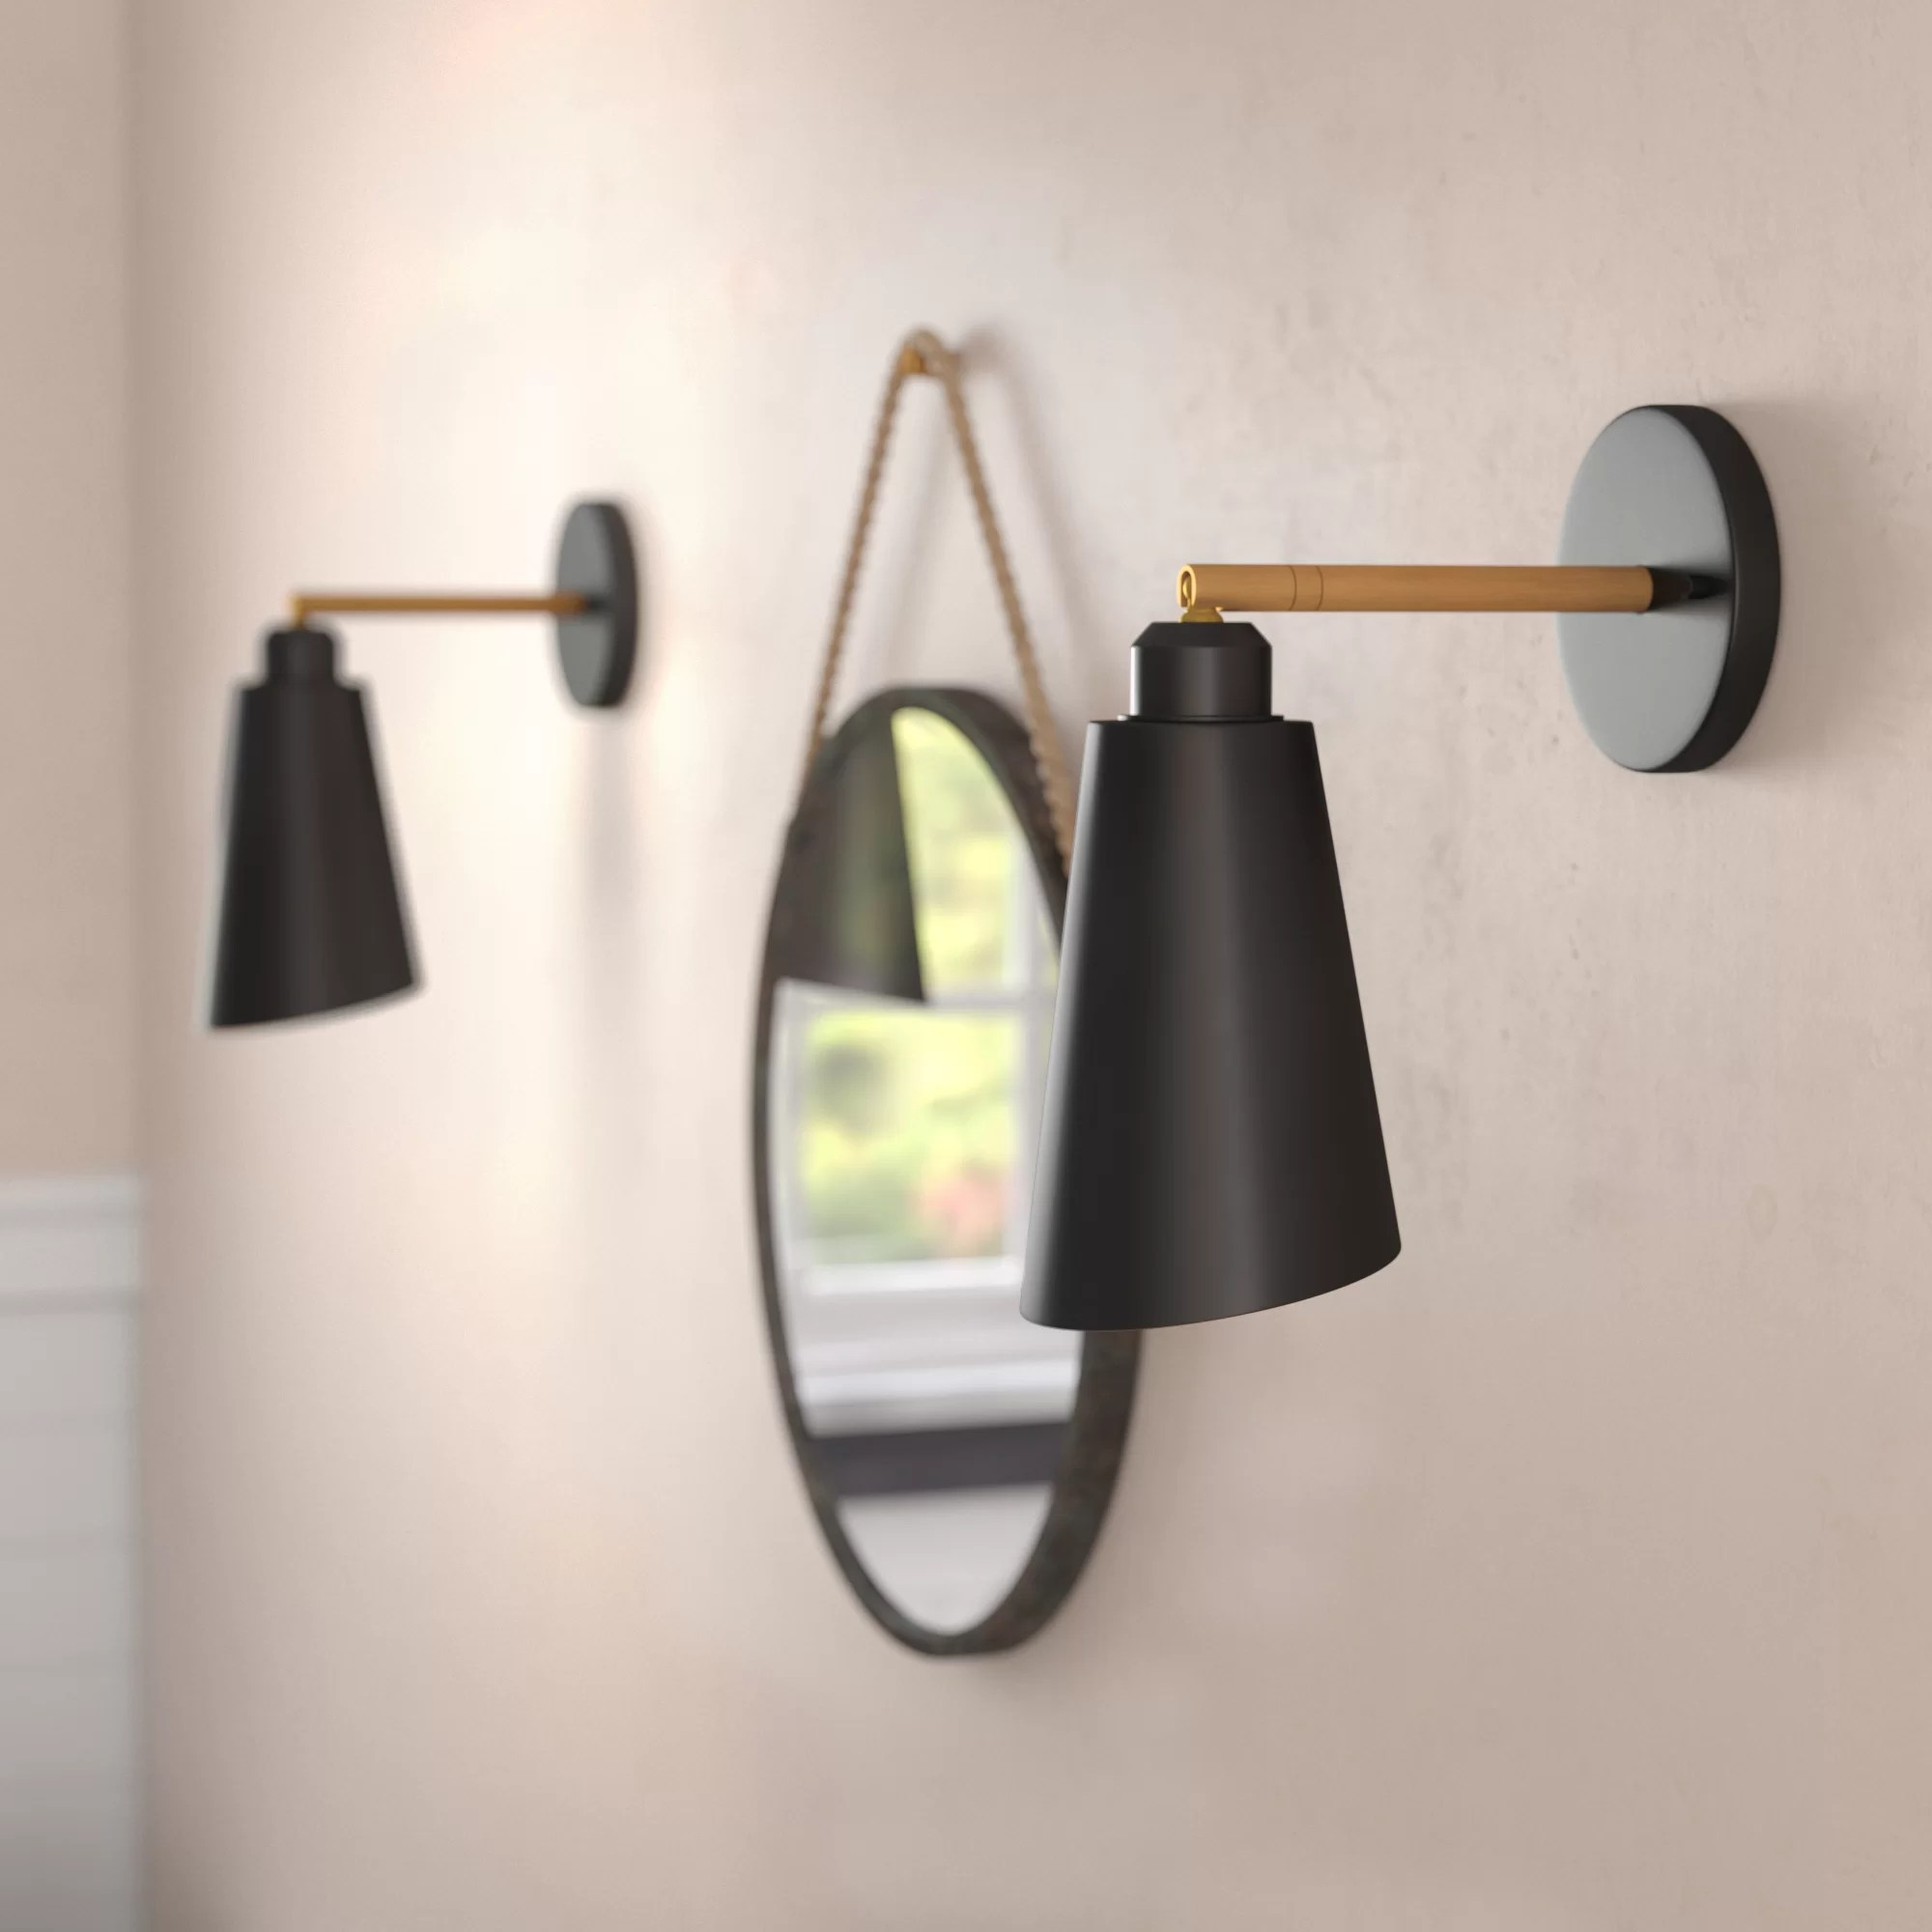 Office Wall Sconces Valmonte 1 Light Led Armed Sconce